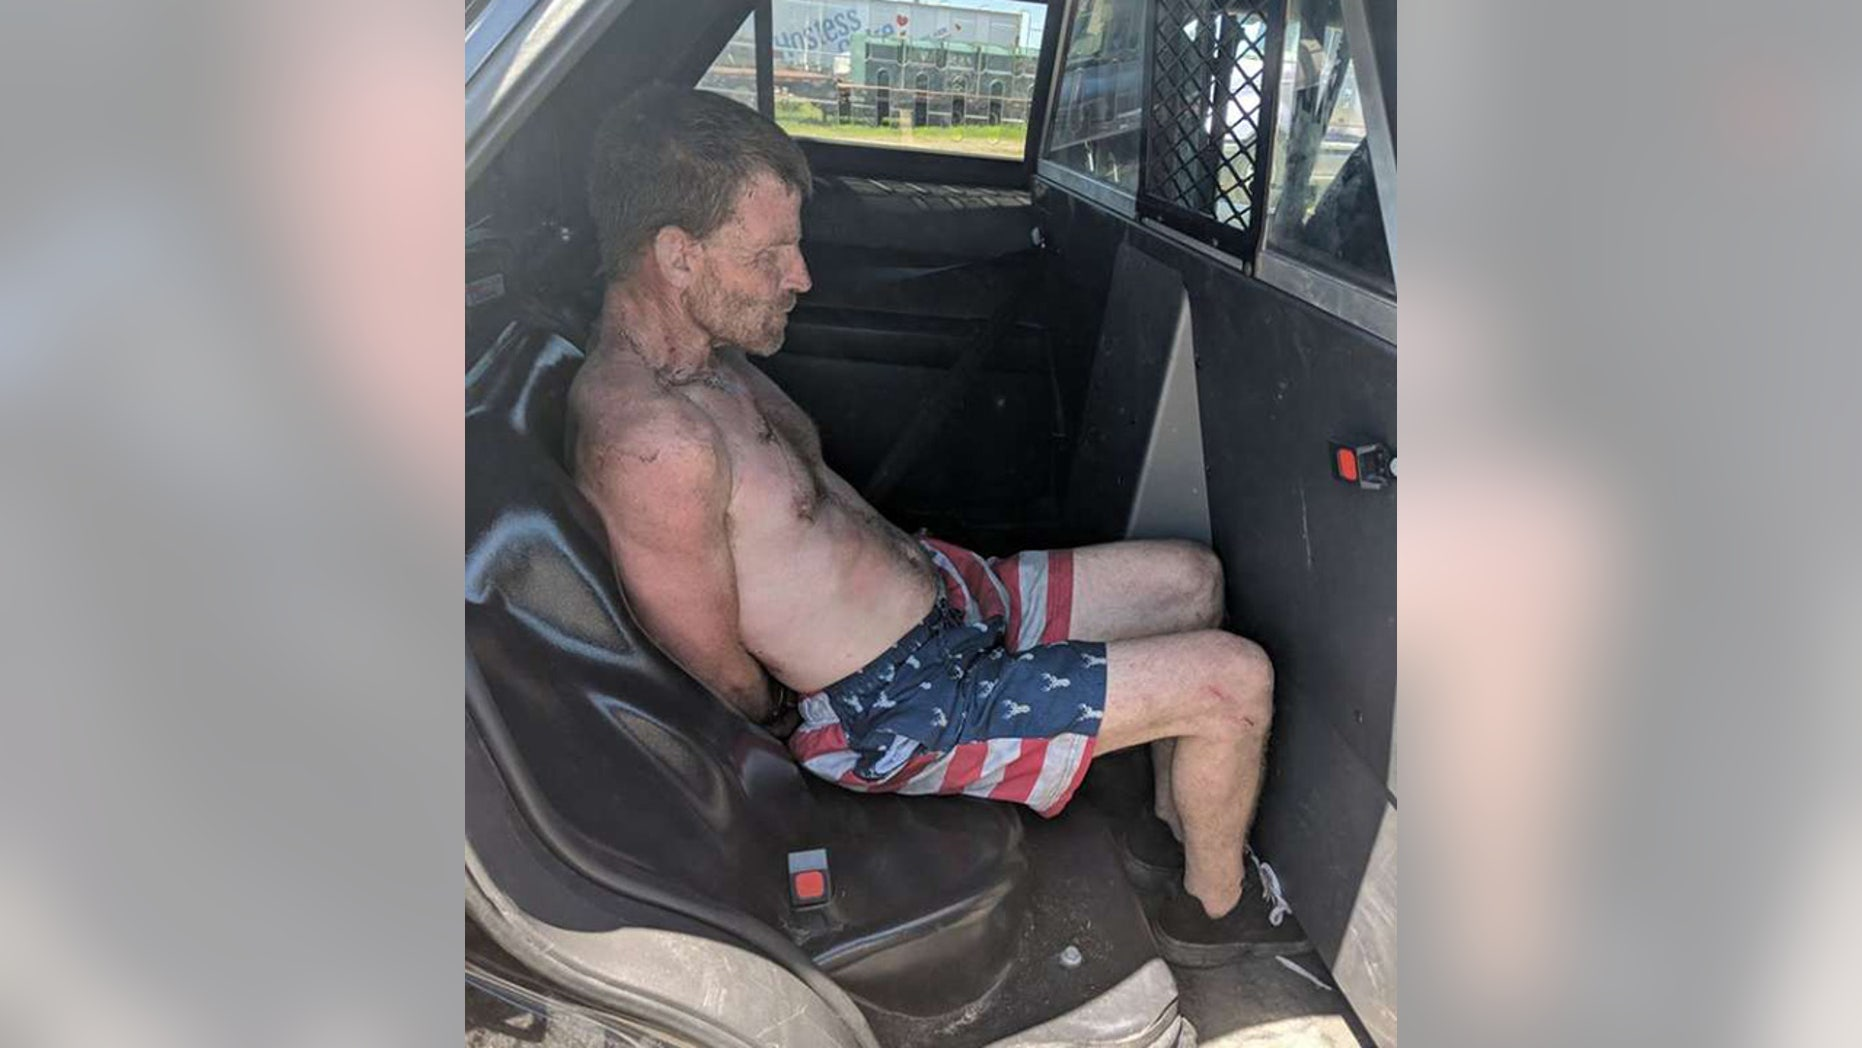 A suspect identified as Matt Hermsmeyer, 46, was arrested Thursday for allegedly stealing a beer truck in Santa Rosa, Calif.